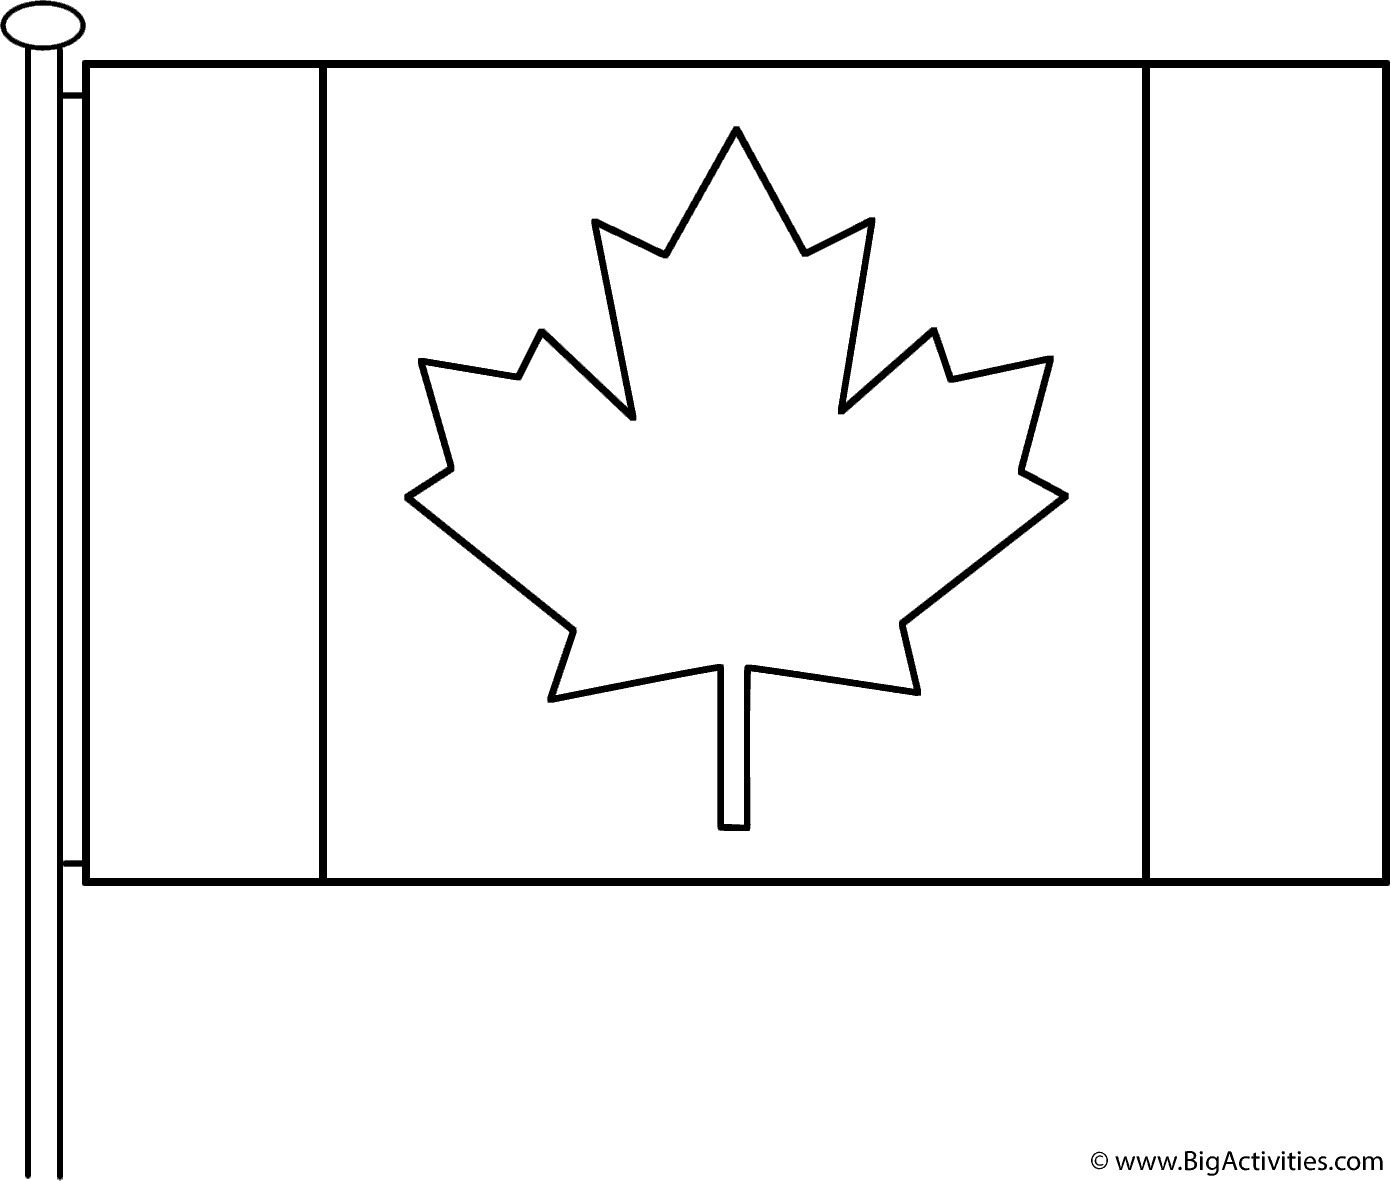 canadian flag coloring page canadian flag coloring pages coloring pages to download page flag canadian coloring